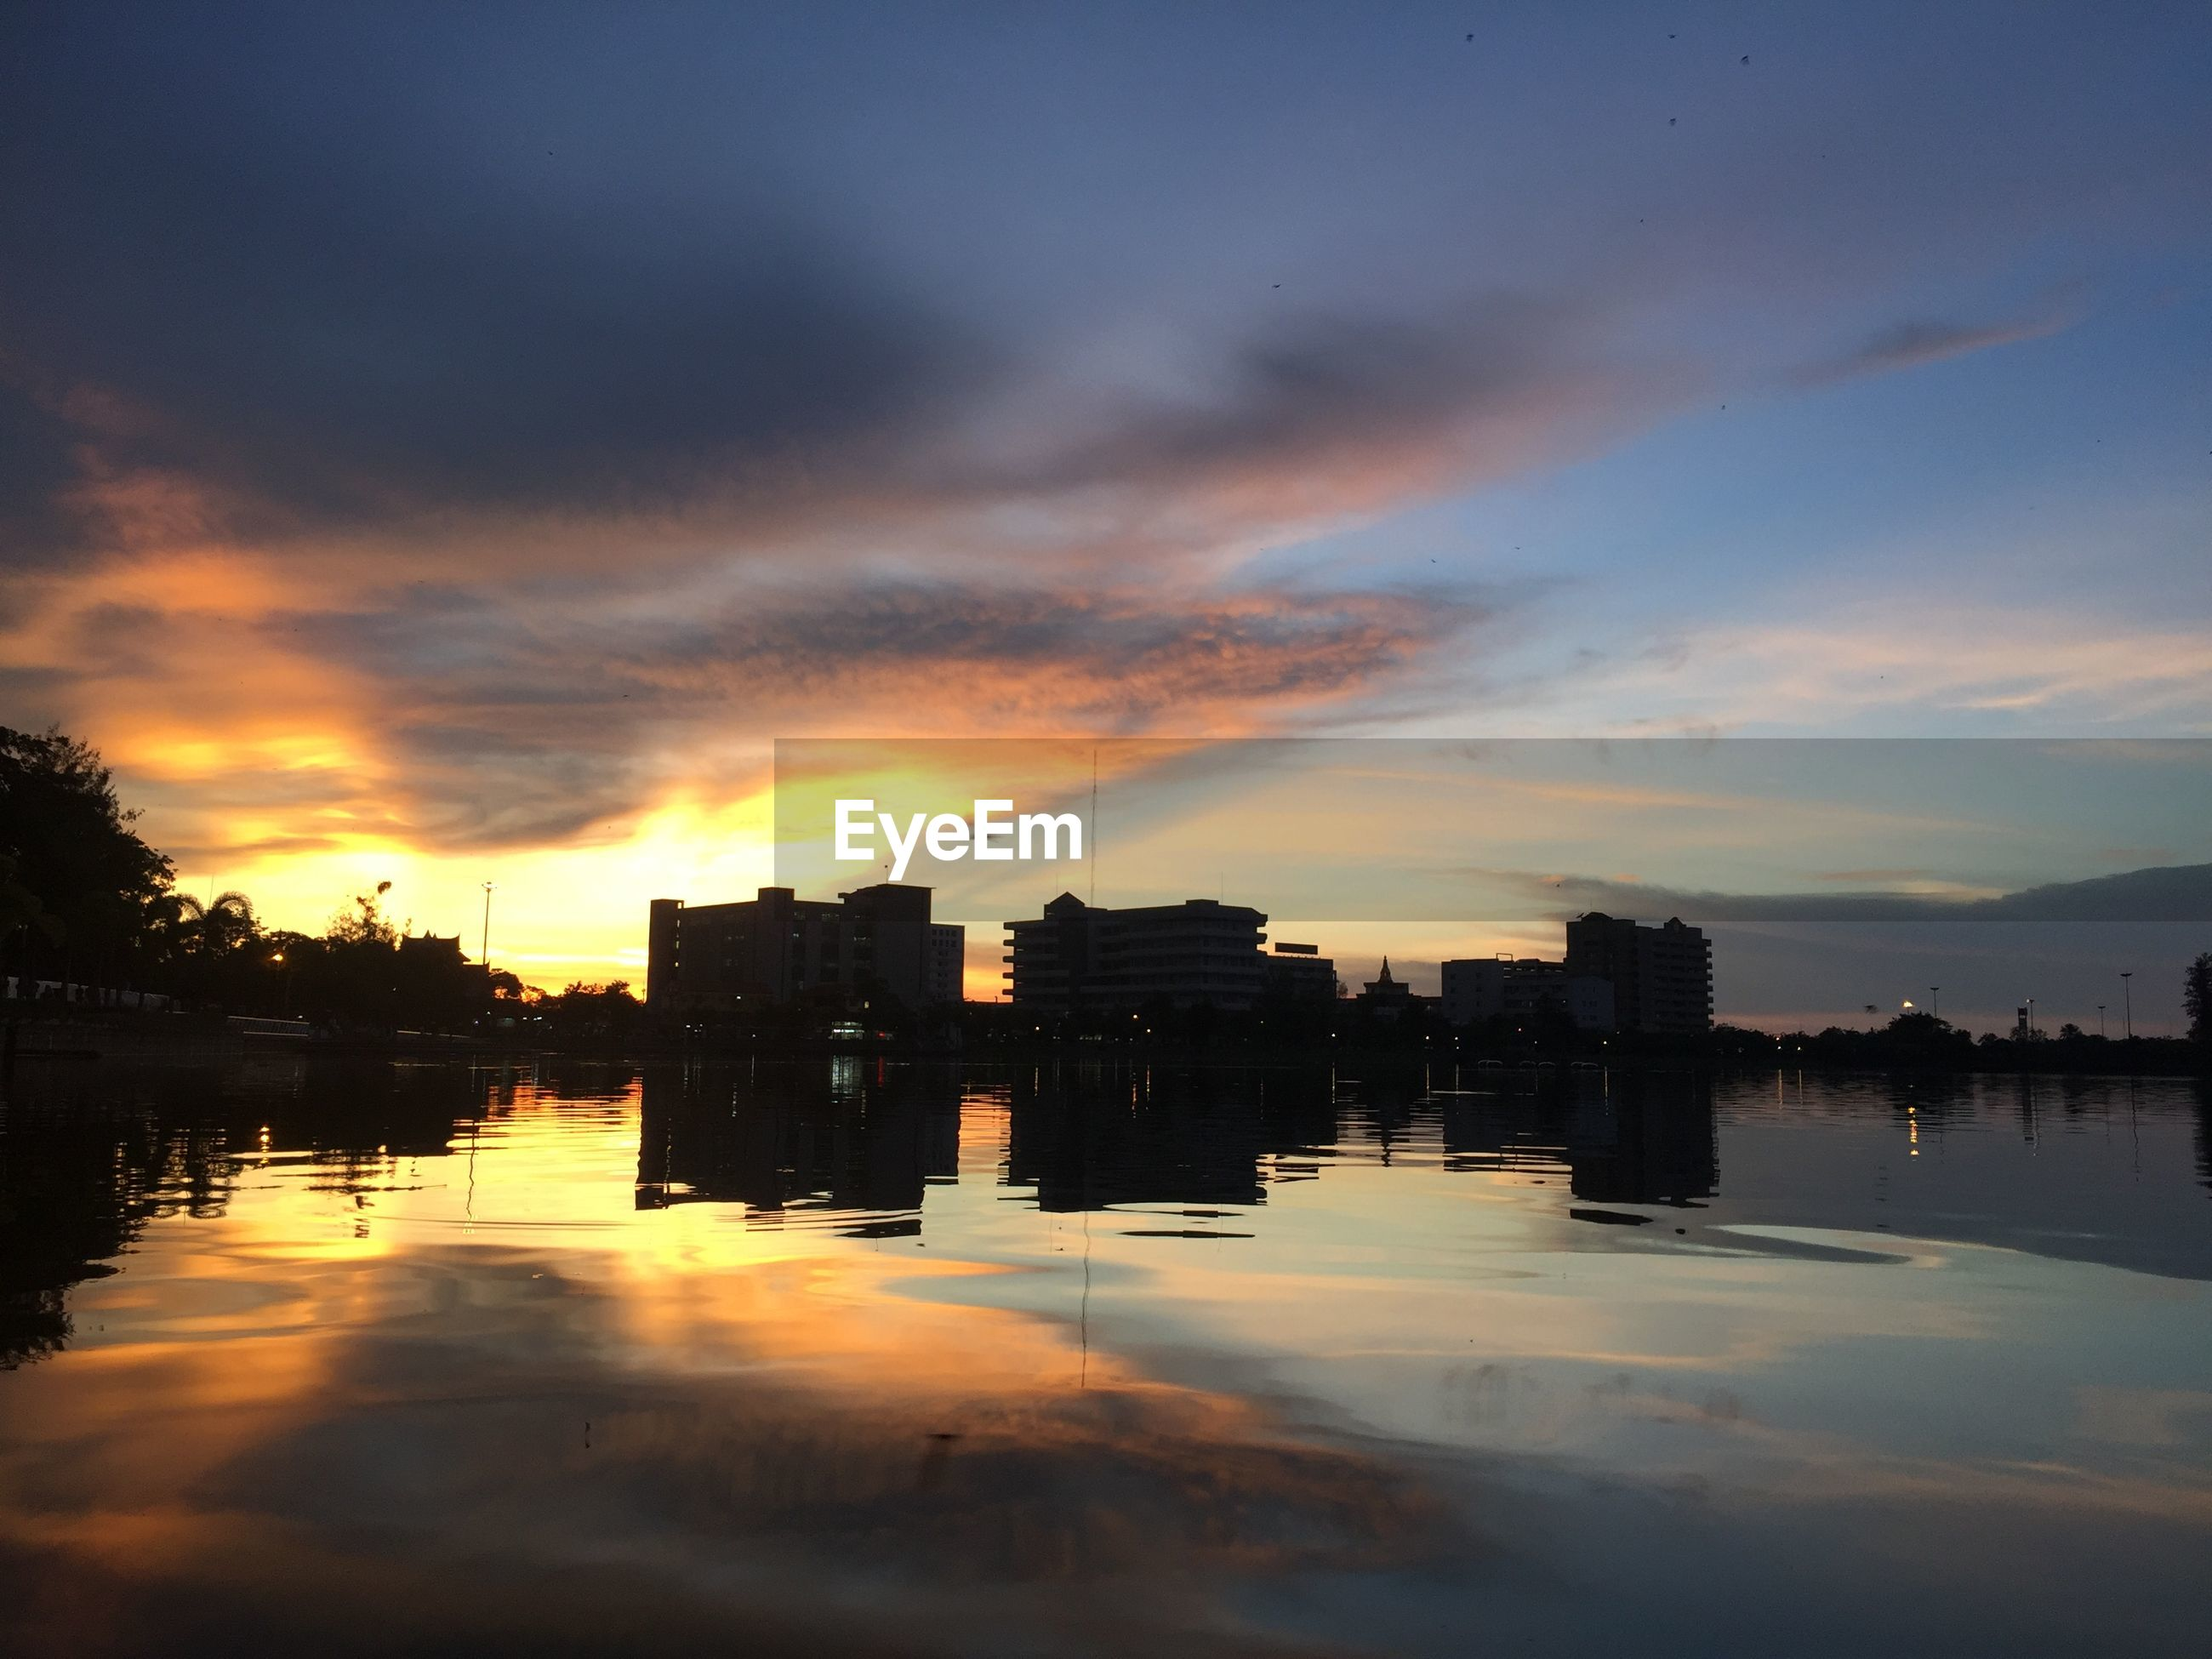 BUILDINGS BY LAKE AGAINST SKY DURING SUNSET